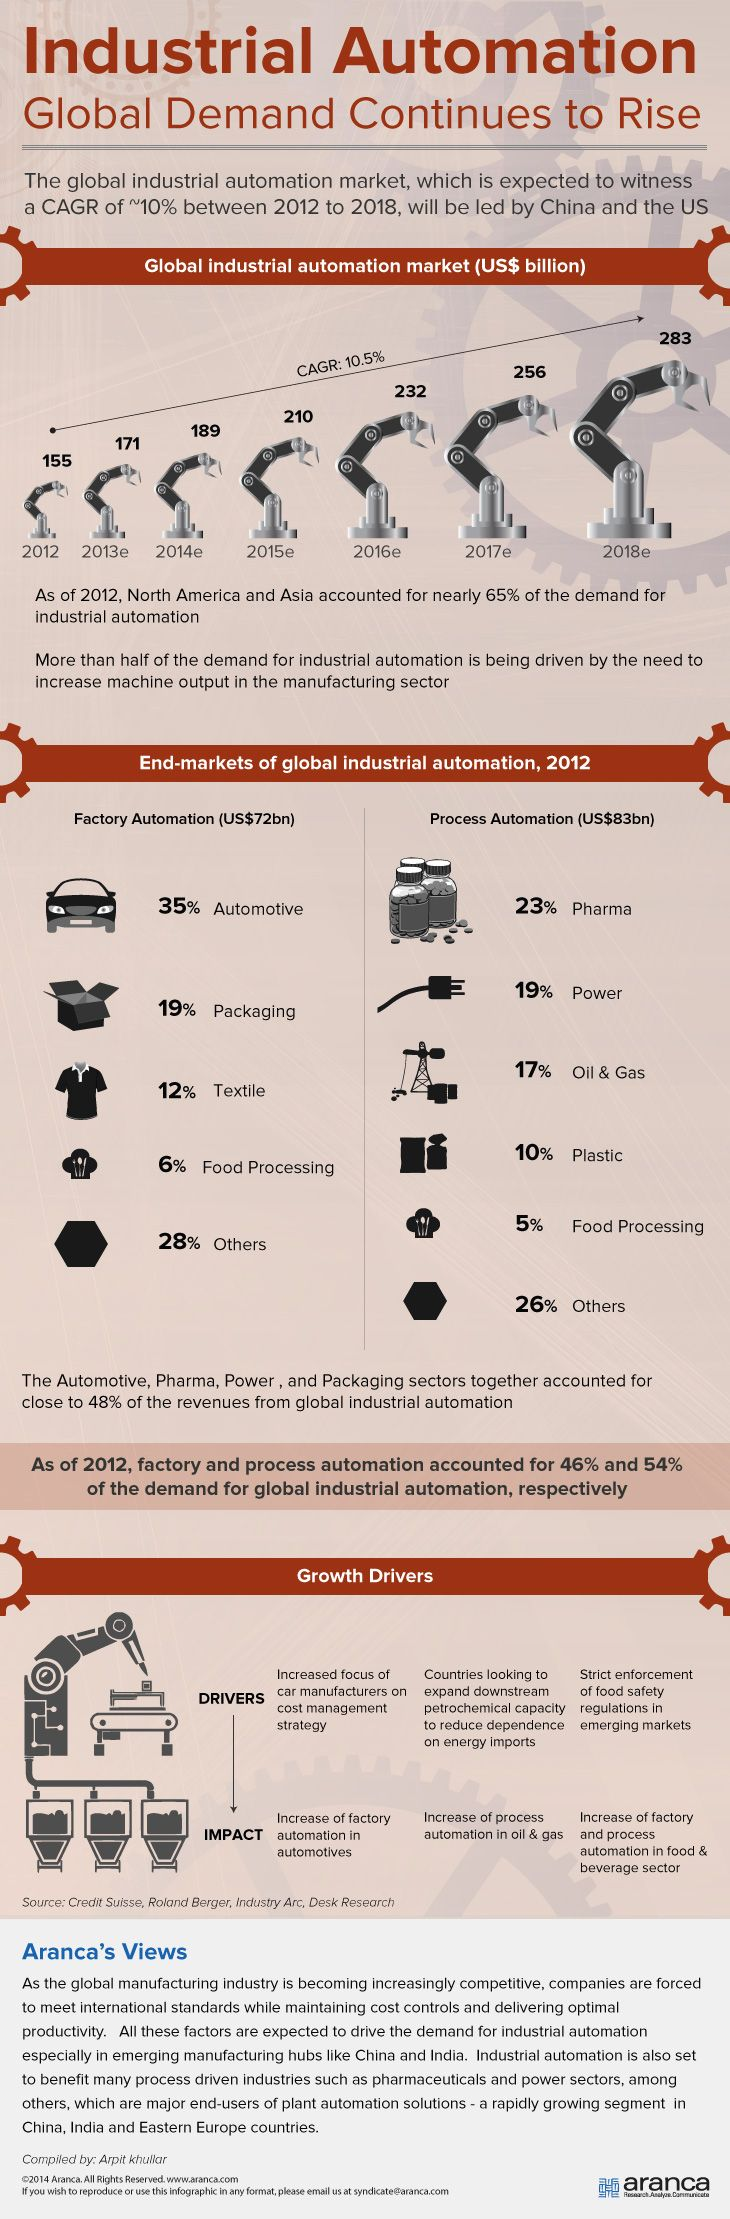 Demand for Industrial Automation in India and China is on the rise.